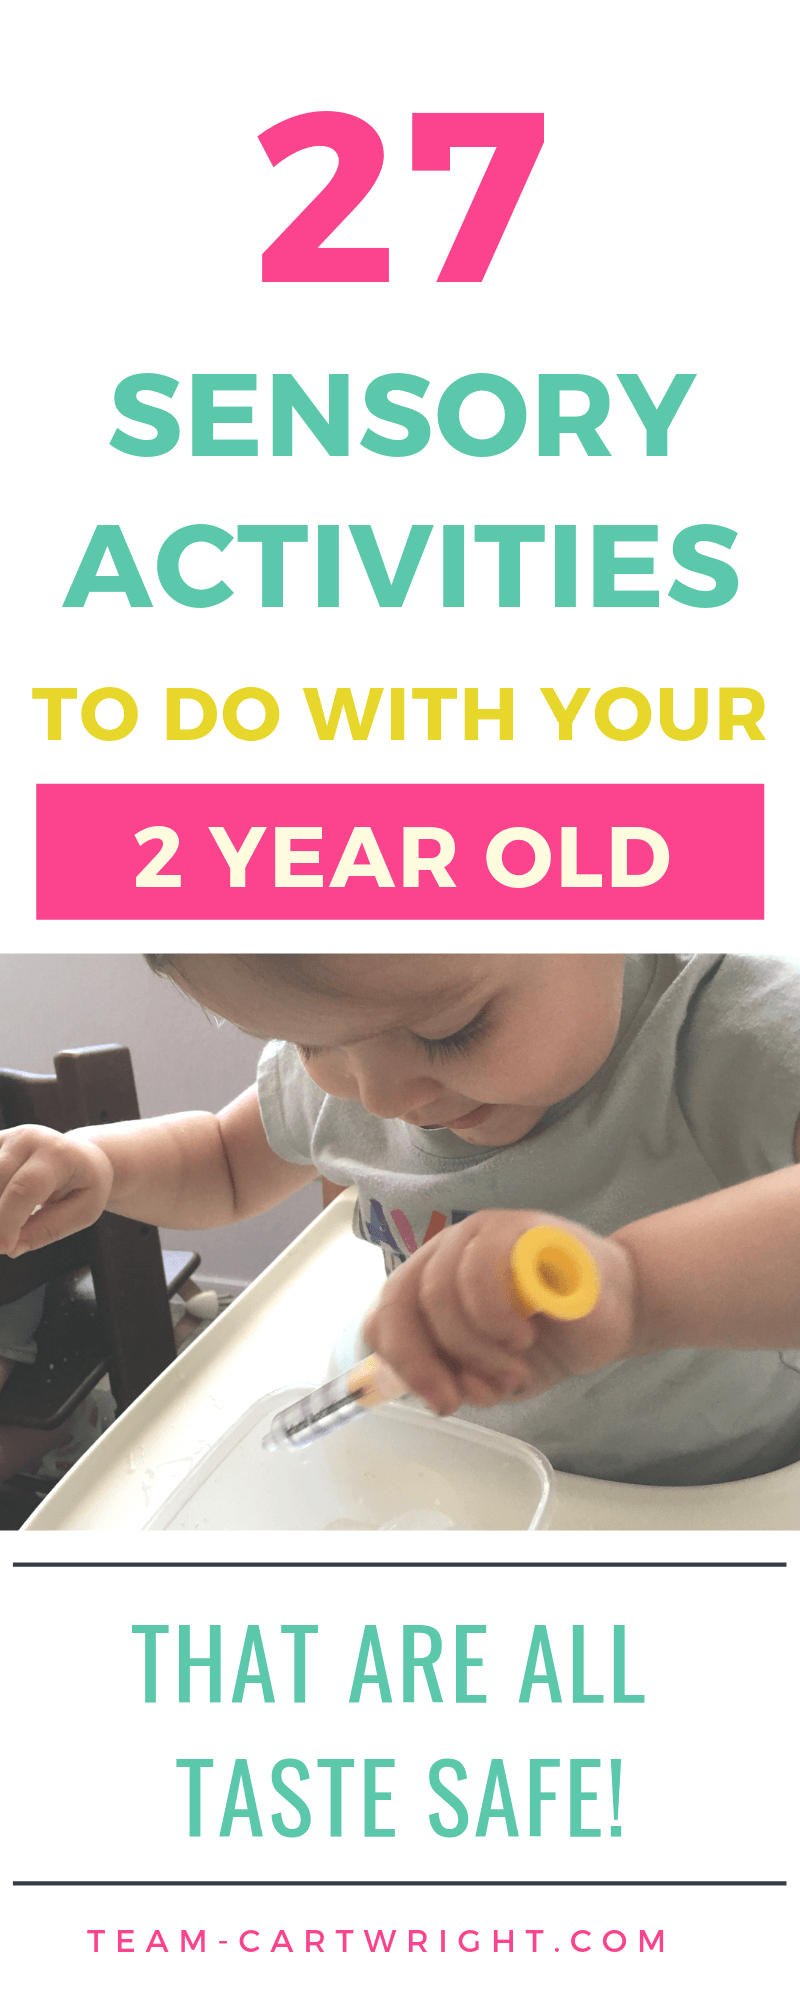 picture of a two year old playing with ice and water with text overlay: 27 Sensory Activities to do with your 2 Year Old that are taste safe